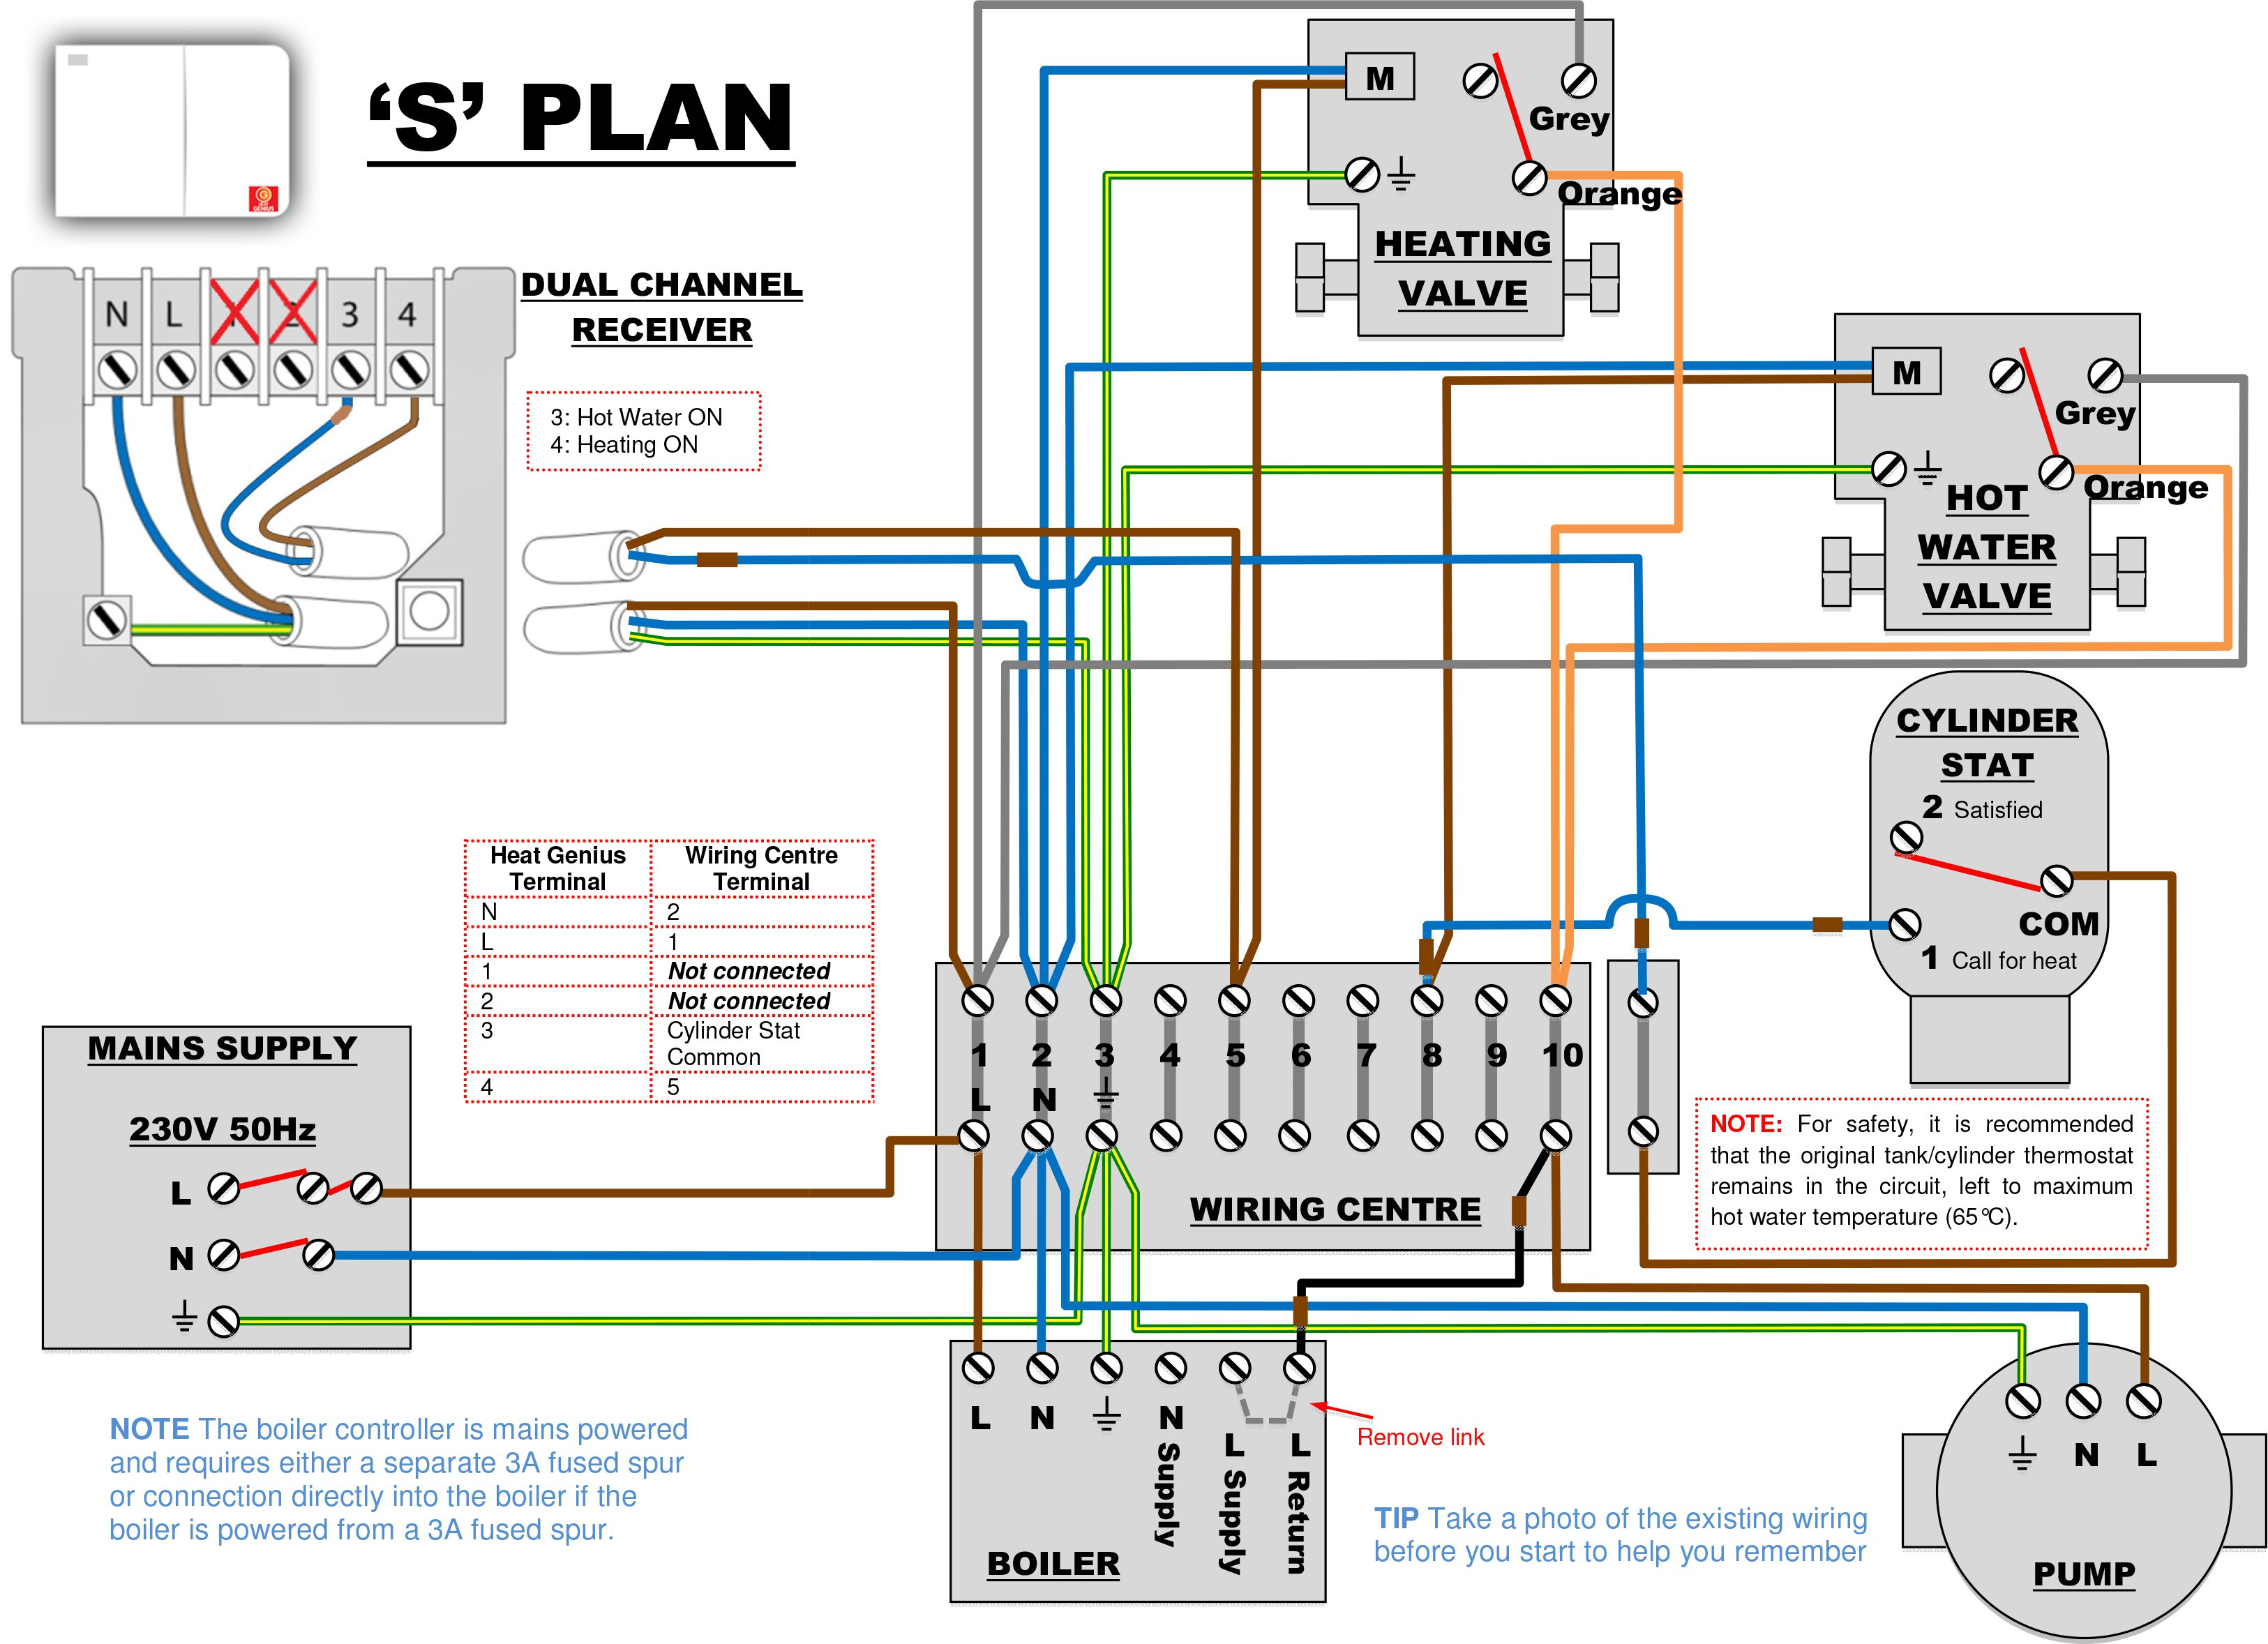 Nest T Stat Wiring Diagram | Wiring Diagram - Nest Wiring Diagram *